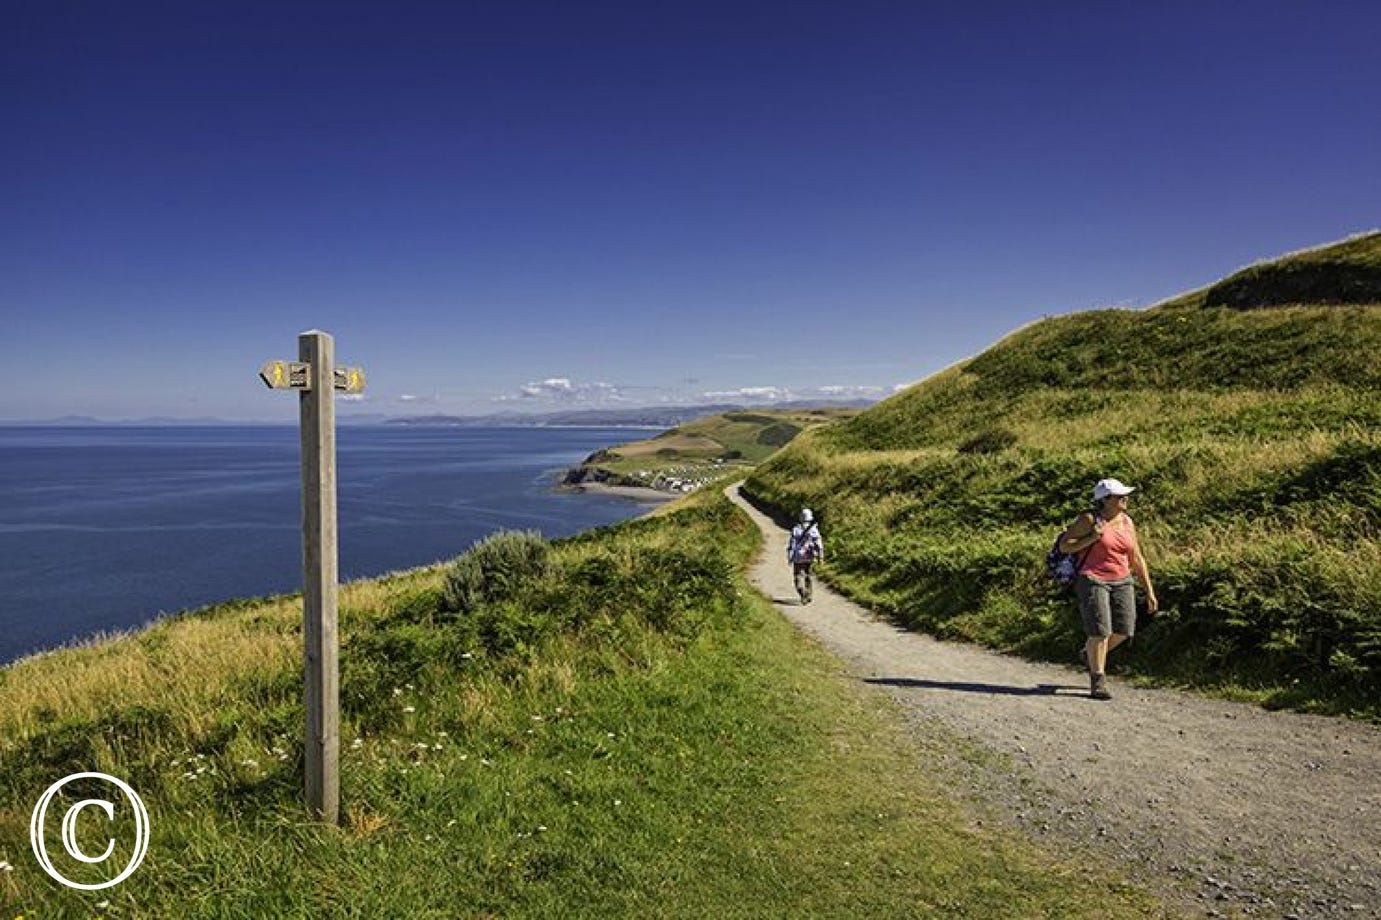 The All Wales Coast Path can be accessed 5 miles from the cottage